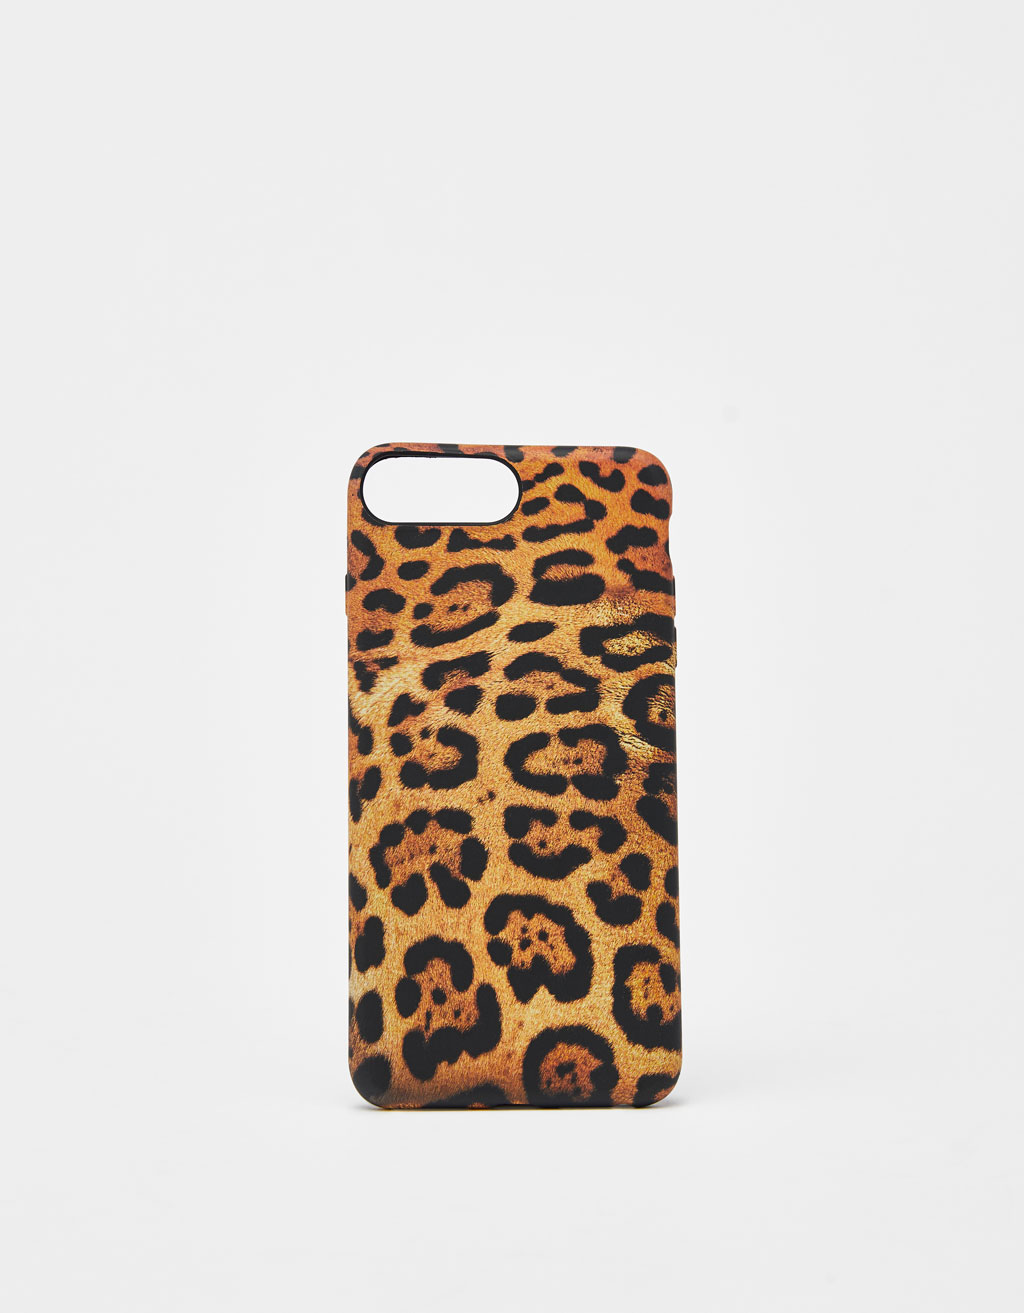 Leopard iPhone 6 Plus/7 Plus/8 Plus case